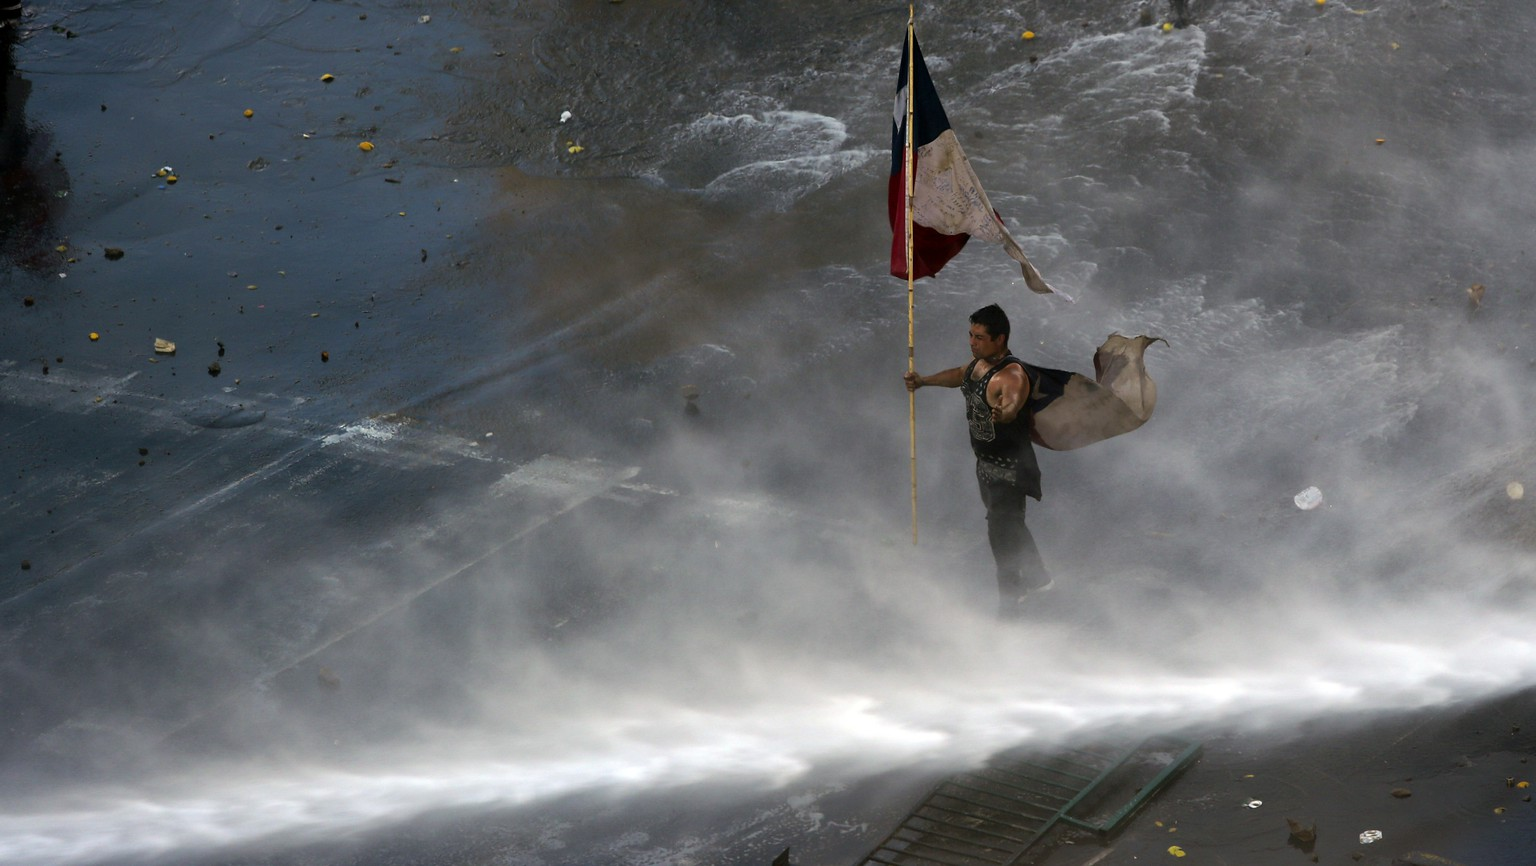 "Holding a Chilean flag, a protester braces against a water canon sprayed from a police truck amid a march by students and union members in Santiago, Chile, Monday, Oct. 21, 2019. Protesters defied an emergency decree and confronted police in Chile's capital on Monday, continuing disturbances that have left at least 11 dead and led the president to say the country is ""at war."" (AP Photo/Miguel Arenas)"